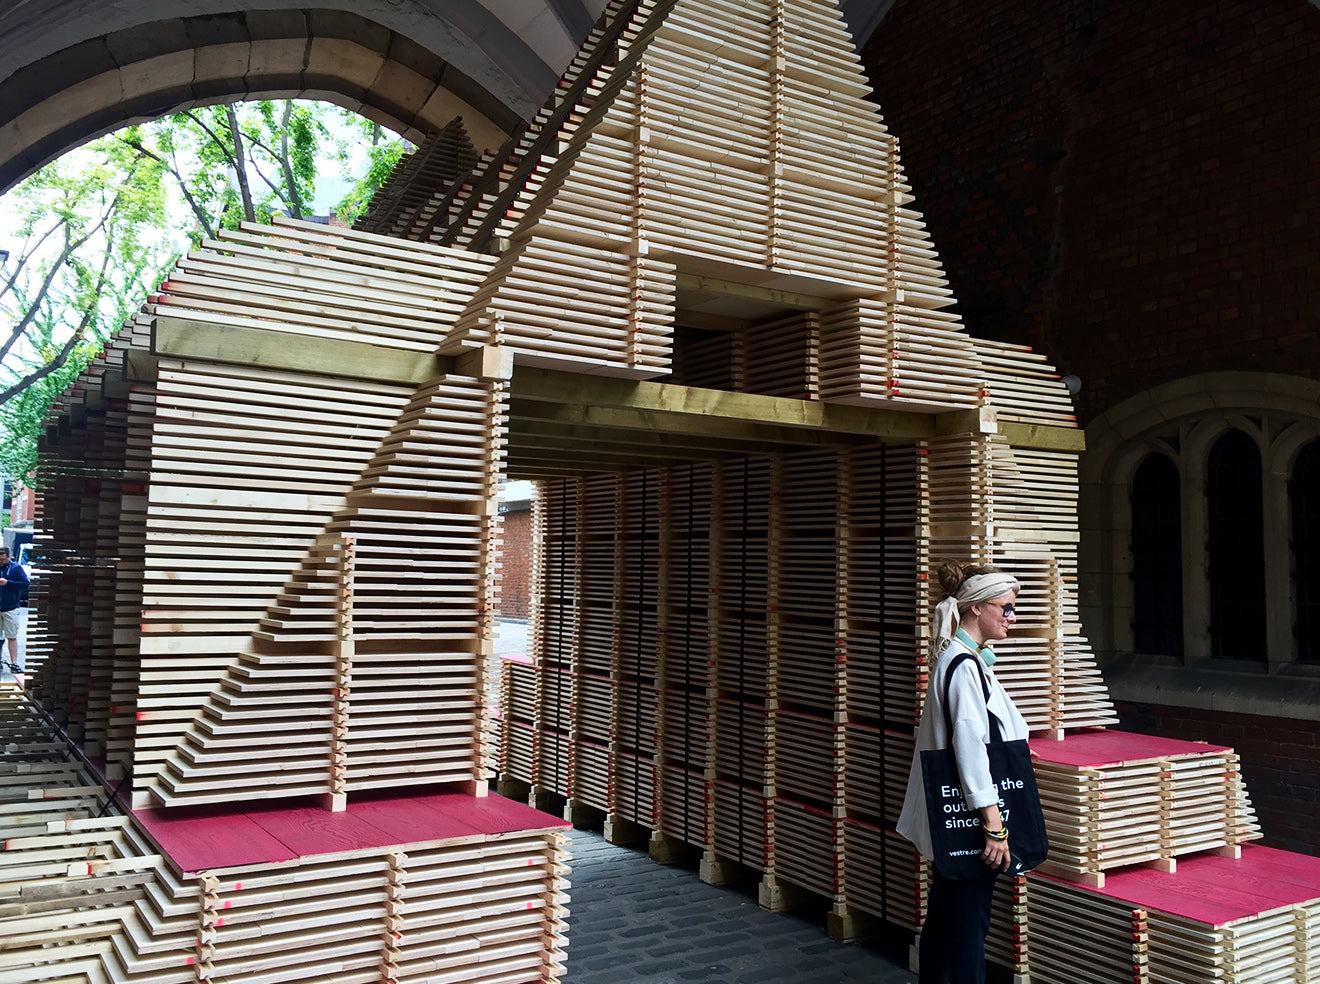 Hak Folley modern wooden pavilion for Clerkenwell Design Week London